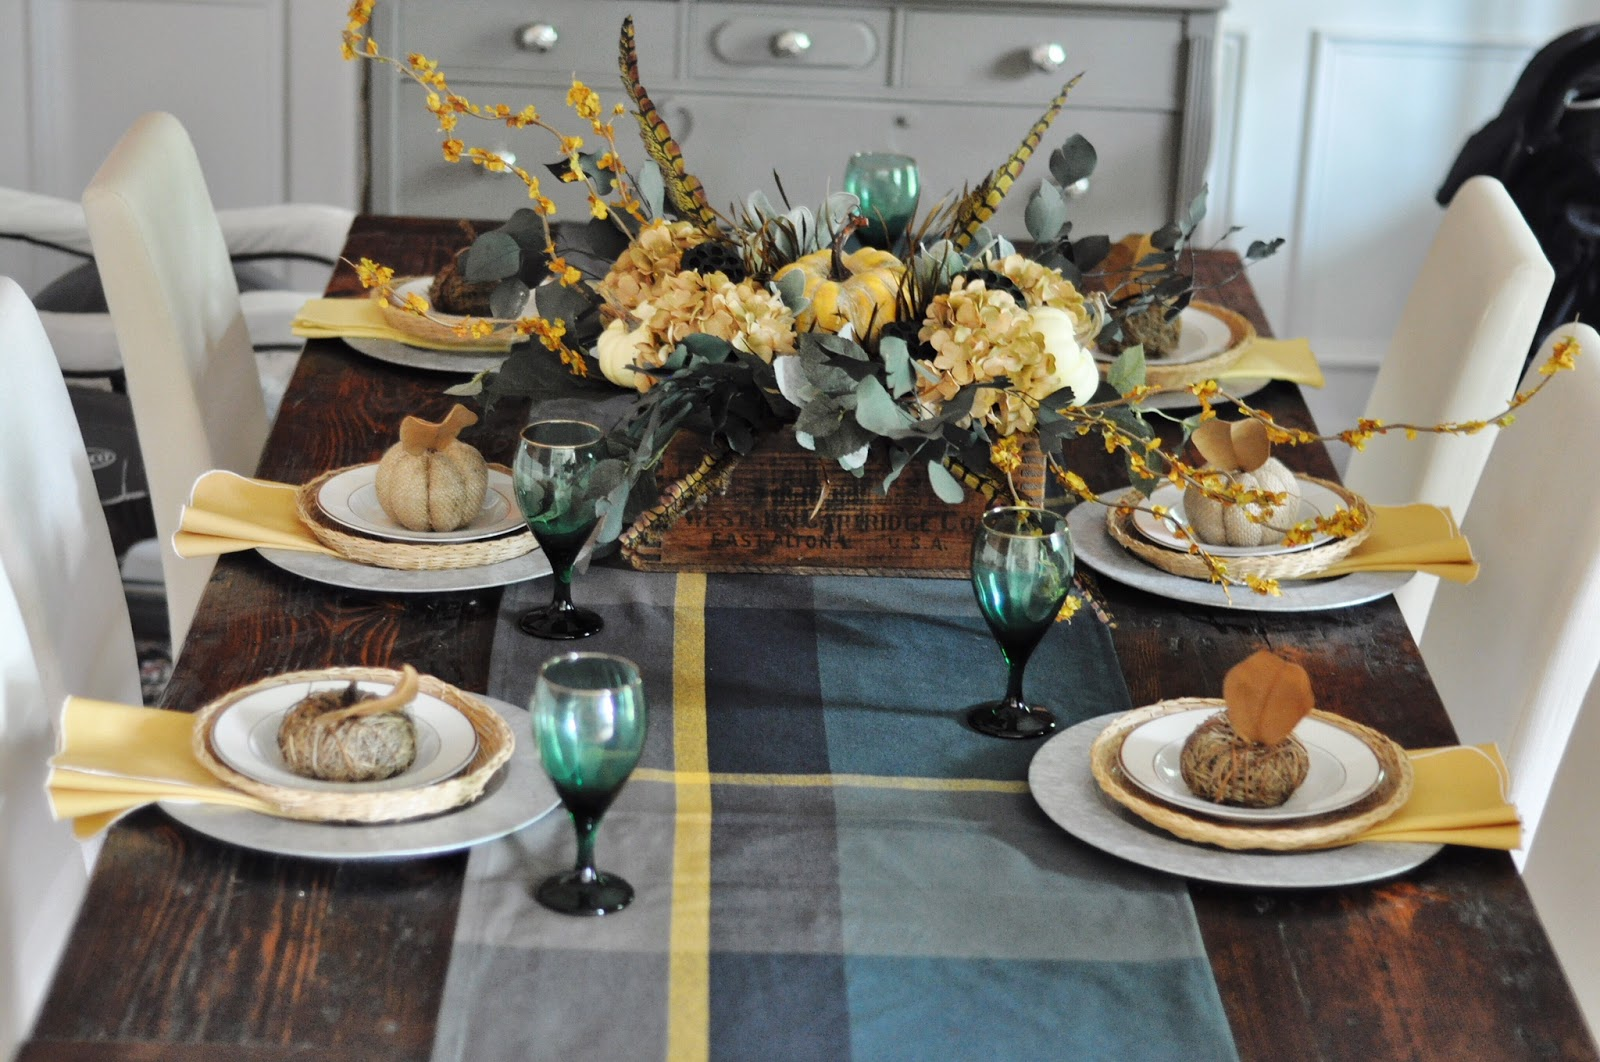 southern belle budget acs target waldo accent table tablescape came from items already had borrowed the thrift not too shabby inspiration piece was runner that hafley ikea closet